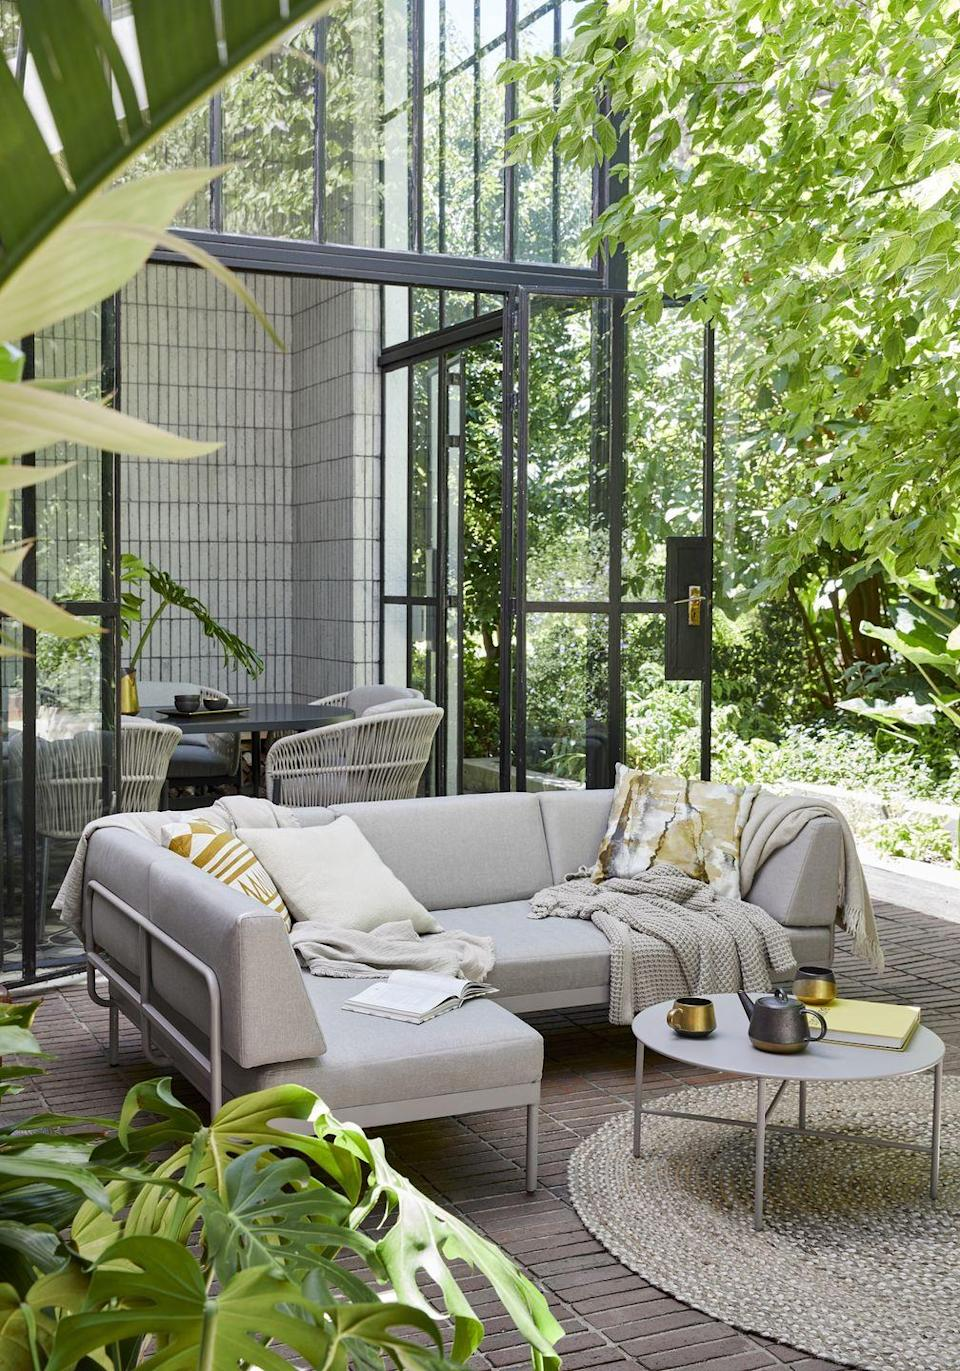 """<p>Spruce up your outdoor space with a cosy <a href=""""https://www.housebeautiful.com/uk/garden/g32443194/best-garden-sofa/"""" rel=""""nofollow noopener"""" target=""""_blank"""" data-ylk=""""slk:corner sofa"""" class=""""link rapid-noclick-resp"""">corner sofa</a>. Complete the look with a selection of outdoor cushions and a string of glistening festoon lights. </p><p><a class=""""link rapid-noclick-resp"""" href=""""https://go.redirectingat.com?id=127X1599956&url=https%3A%2F%2Fwww.johnlewis.com%2Fbrowse%2Ffurniture-lights%2Fgarden%2Fgarden-furniture-sets%2Fgarden-sofa-sets%2F_%2FN-5unsZ1yzi23x&sref=https%3A%2F%2Fwww.redonline.co.uk%2Finteriors%2Fhomeware%2Fg36003381%2Fjohn-lewis-garden-collection-spring-summer%2F"""" rel=""""nofollow noopener"""" target=""""_blank"""" data-ylk=""""slk:SHOP NOW"""">SHOP NOW</a></p>"""